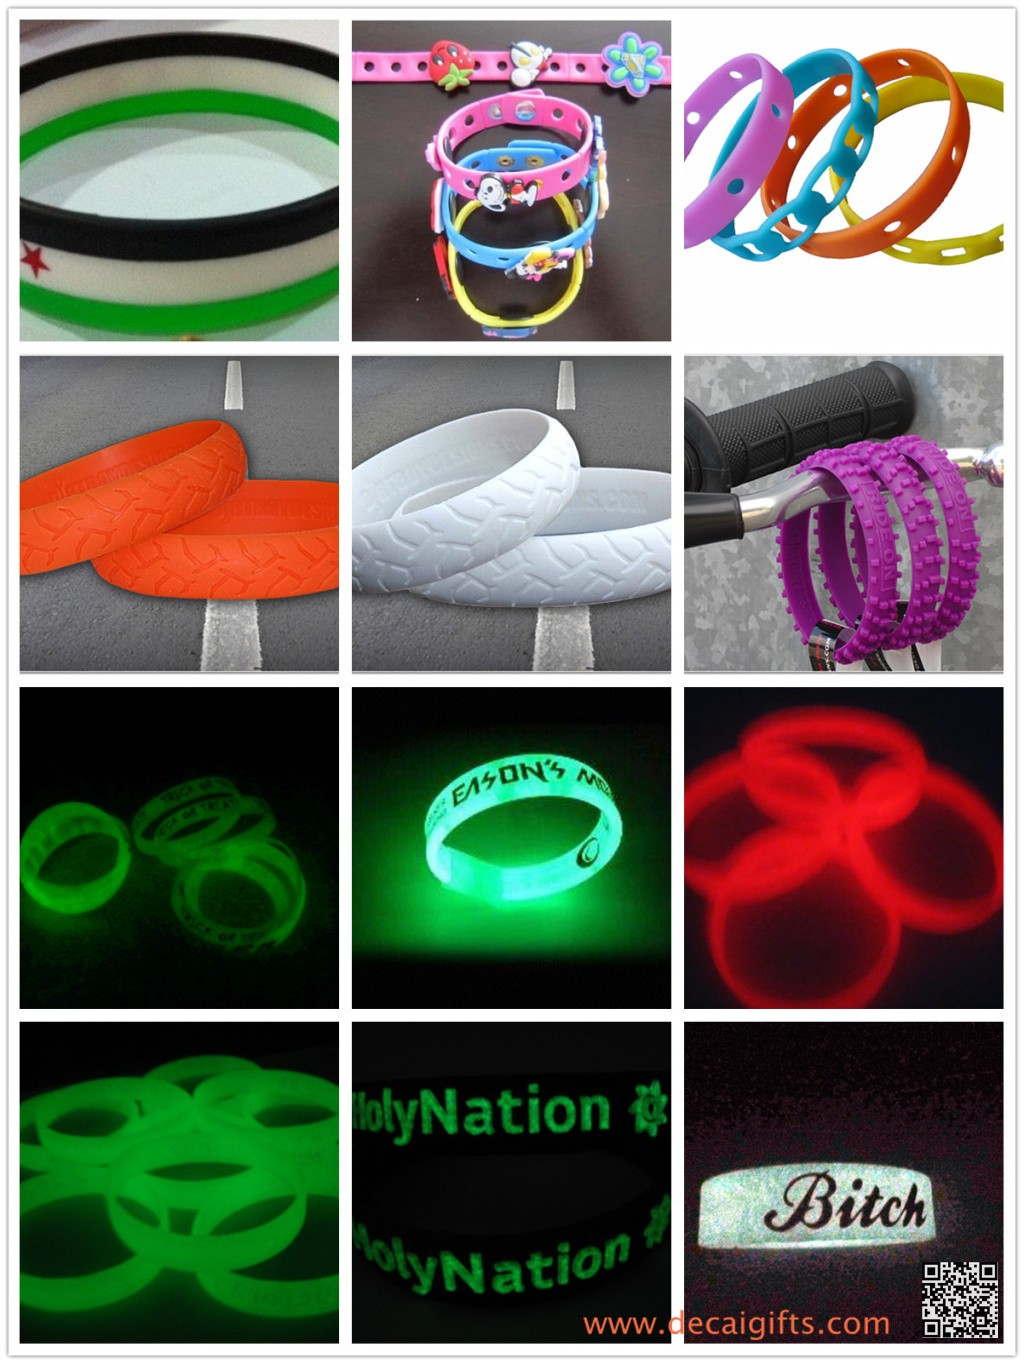 Glow in dark wristbands.jpg